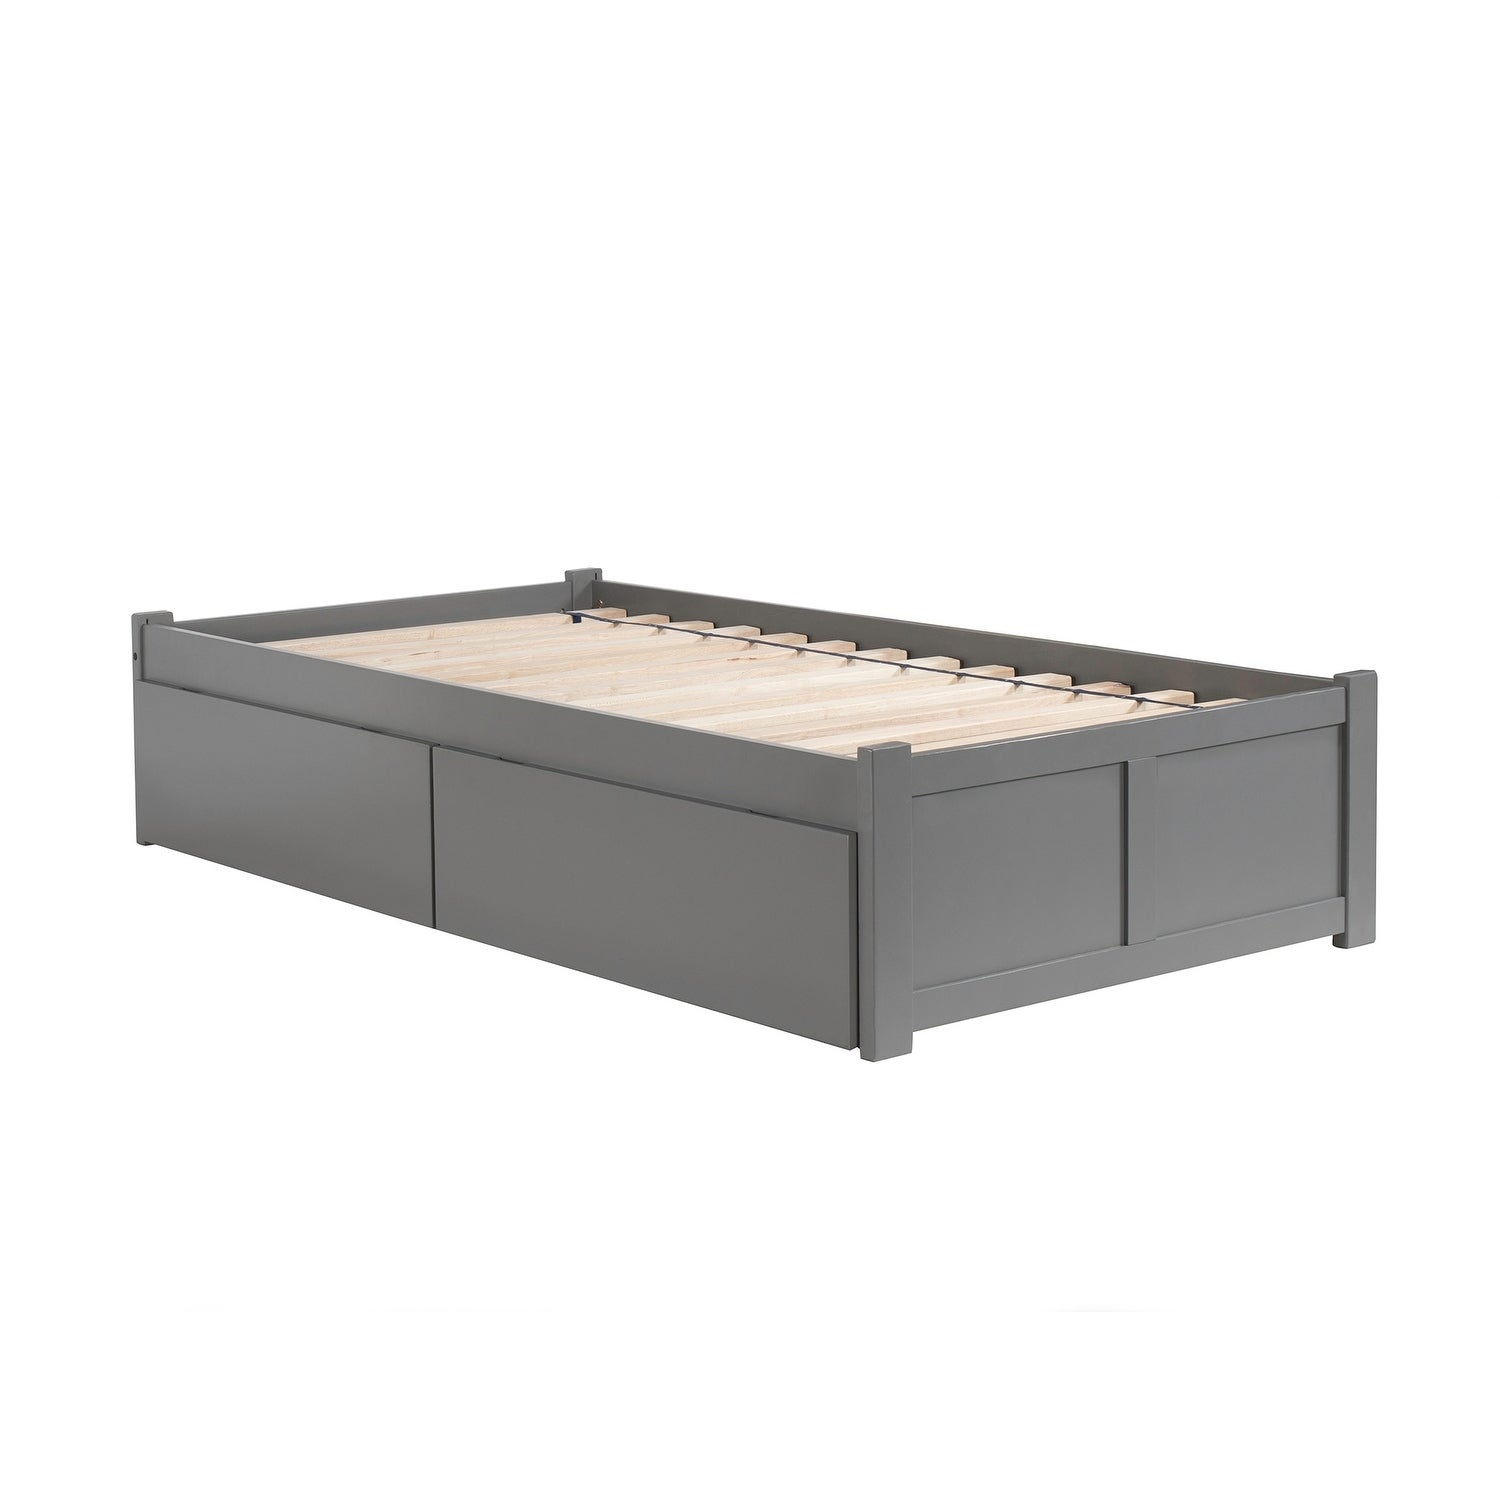 Shop Concord Twin Platform Bed With Flat Panel Foot Board And 2